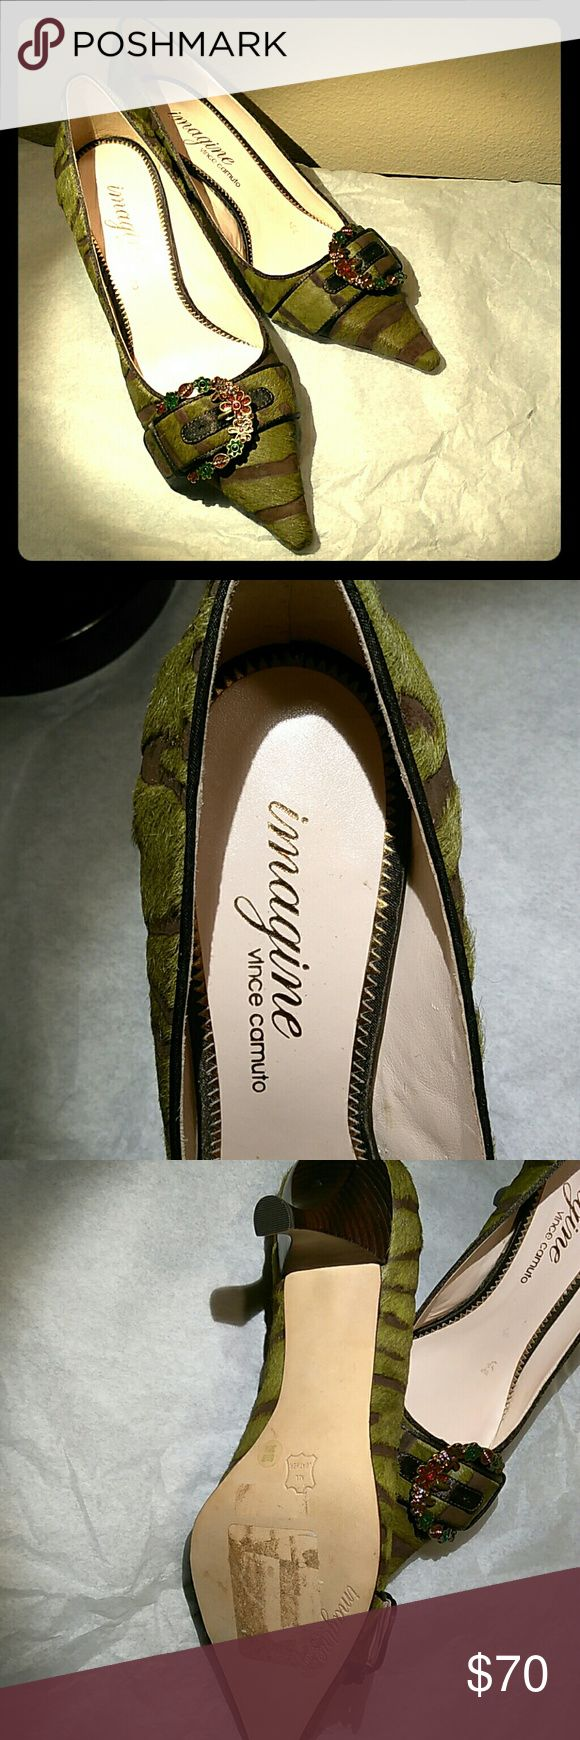 Lady's shoes Vince Camuto lady's shoes, olive green and brown zebra stripes, jeweled buckle. Never worn. Size 8 1/2 B Vince Camuto Shoes Heels